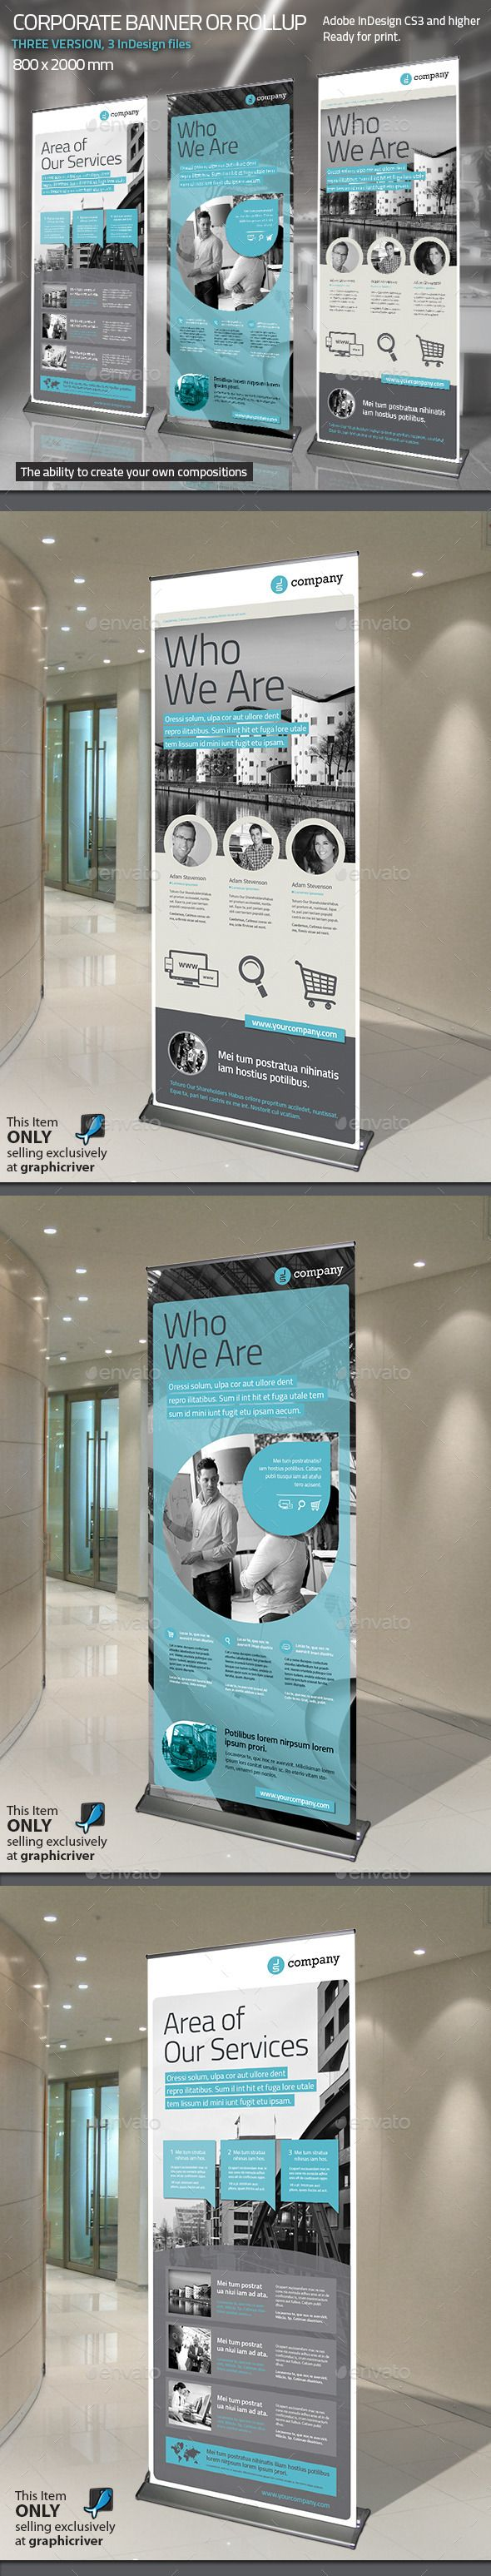 Corporate Banner or Rollup Template #desgn Download: http://graphicriver.net/item/-corporate-banner-or-rollup-vol-8/8959323?ref=ksioks